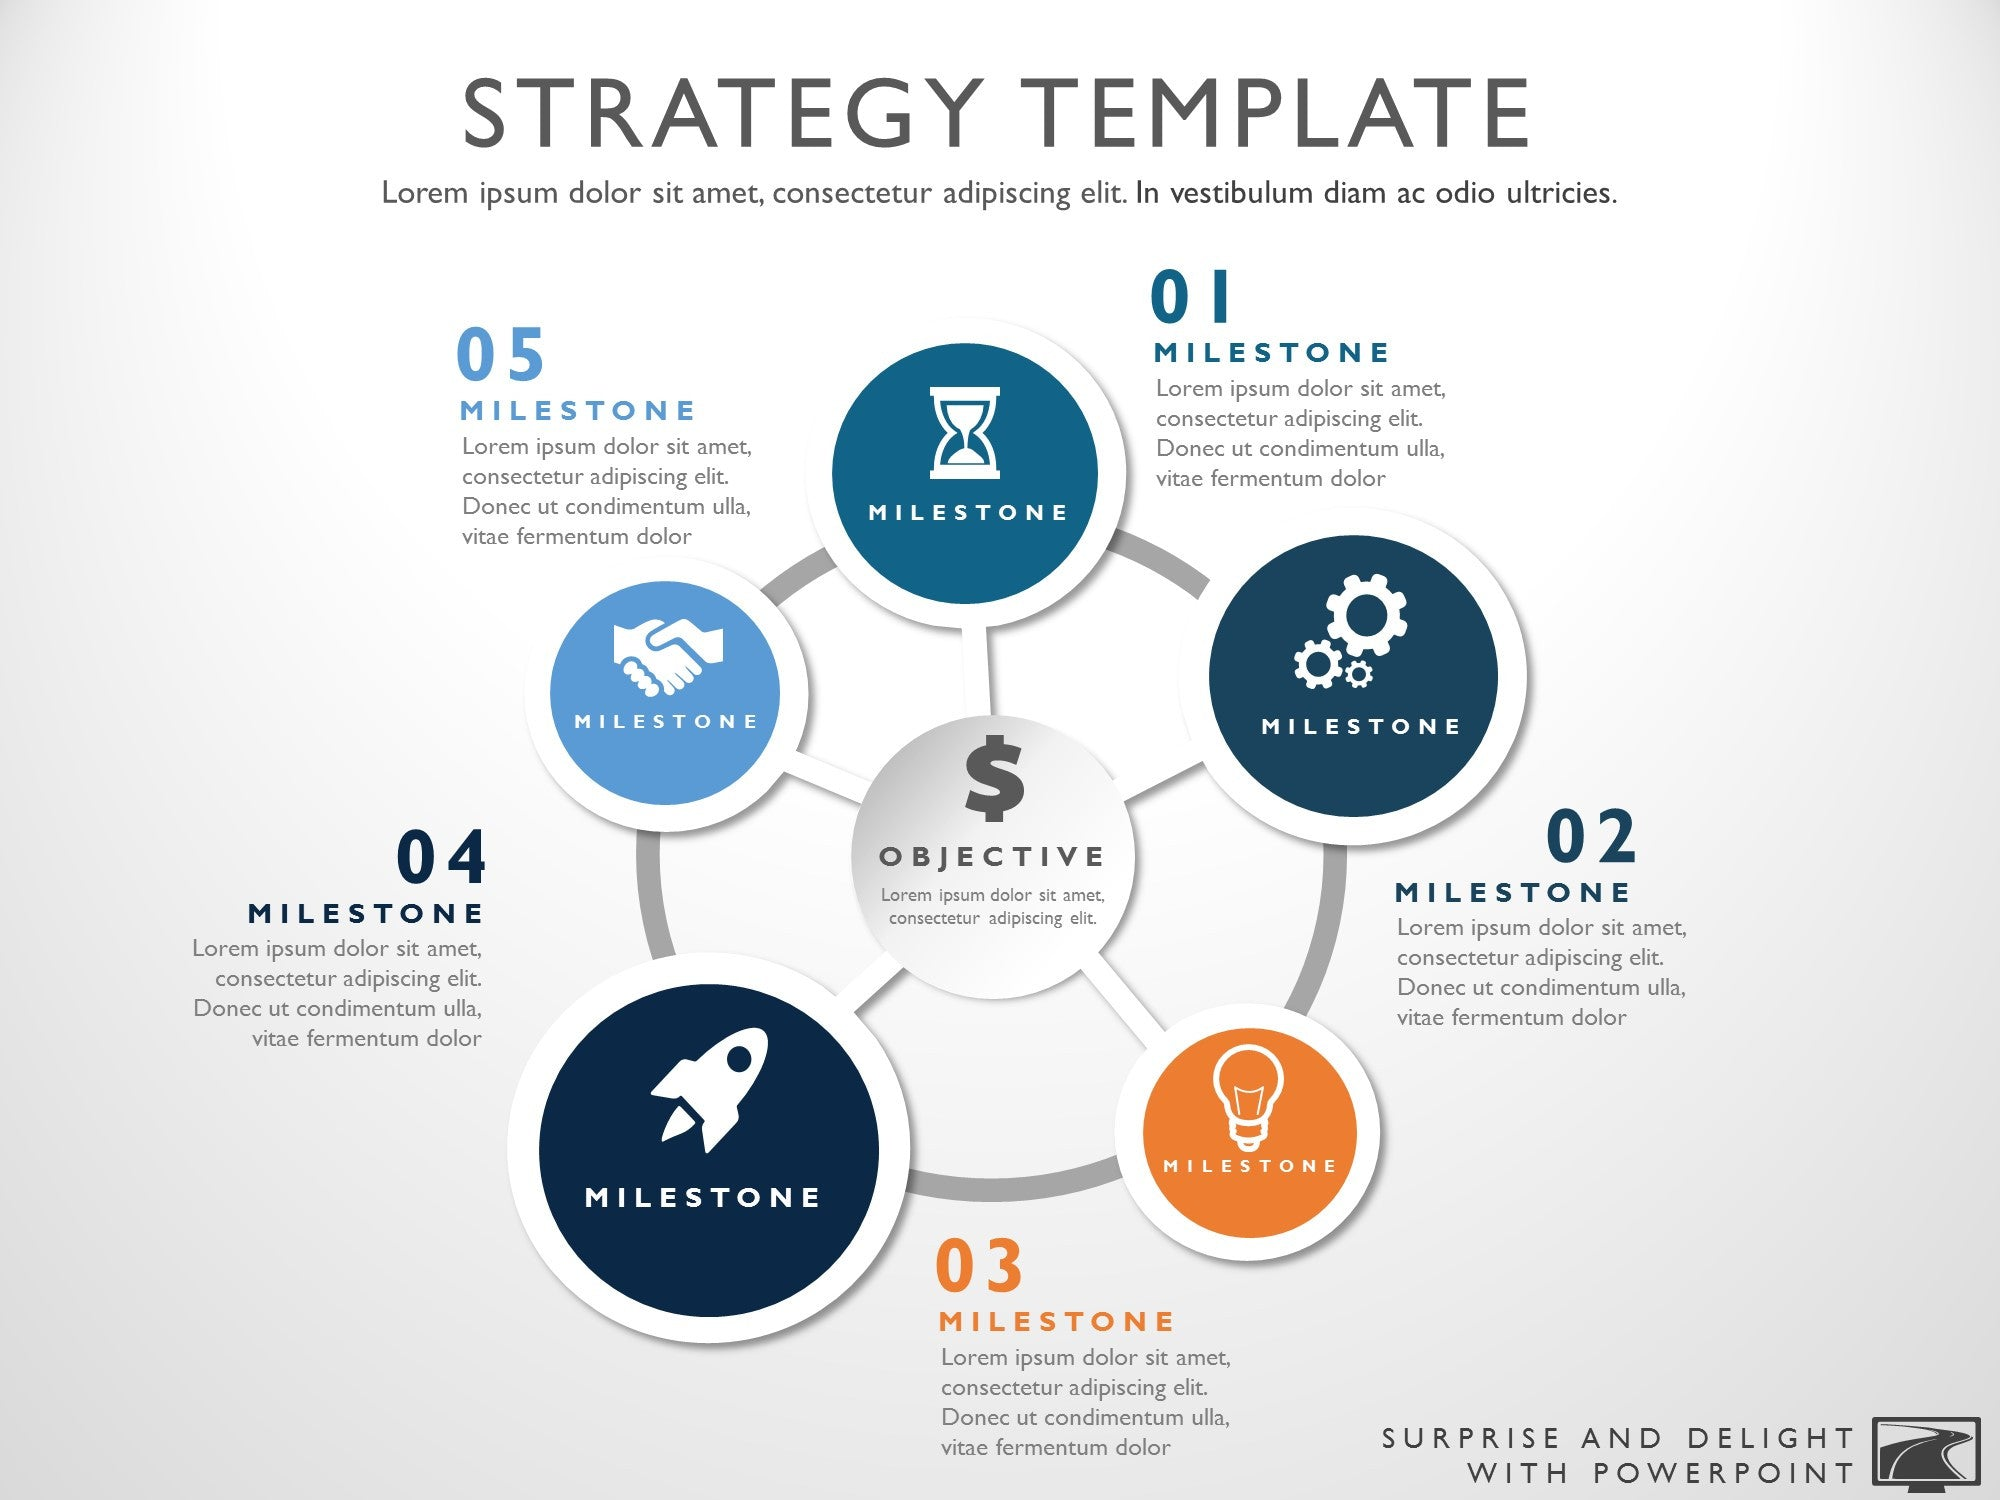 strategy roadmap template thinking templates innovation service organizational diagram strategic learning chart powerpoint business timeline myproductroadmap development planning infographic infographics